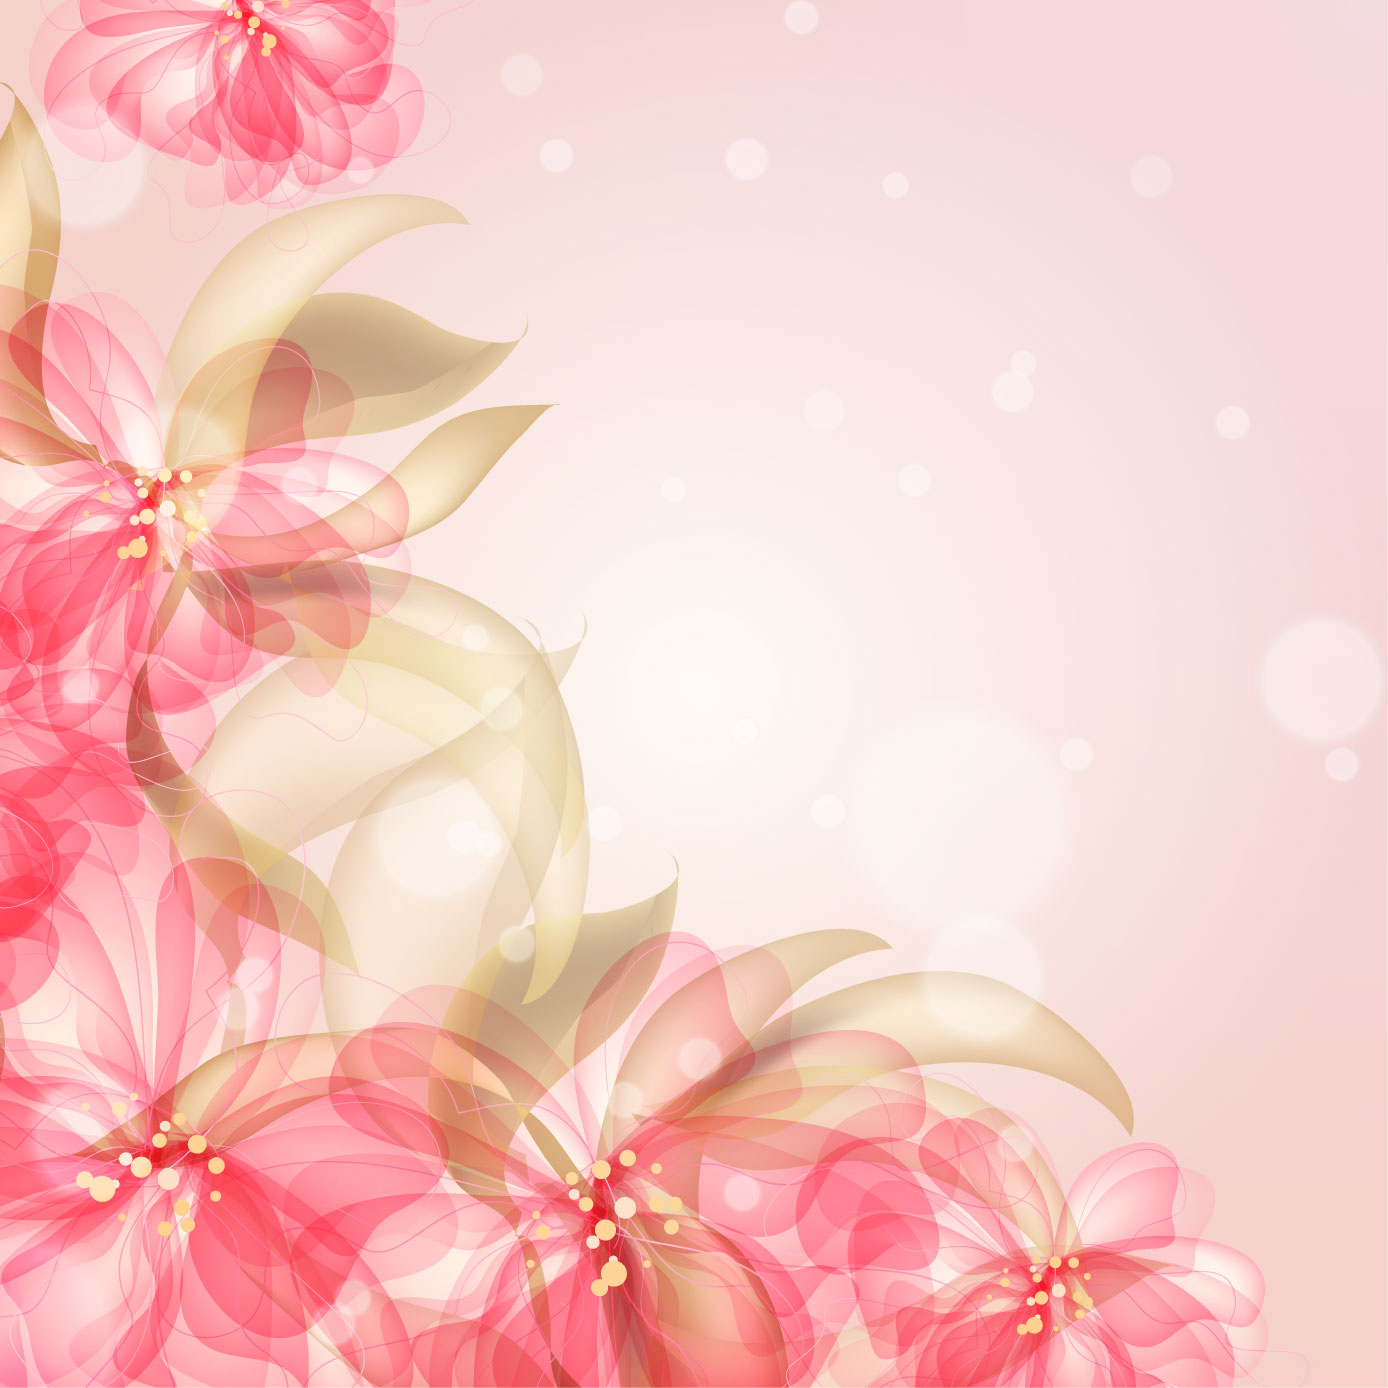 Free background images flowers picture download Free background images flowers - ClipartFest picture download